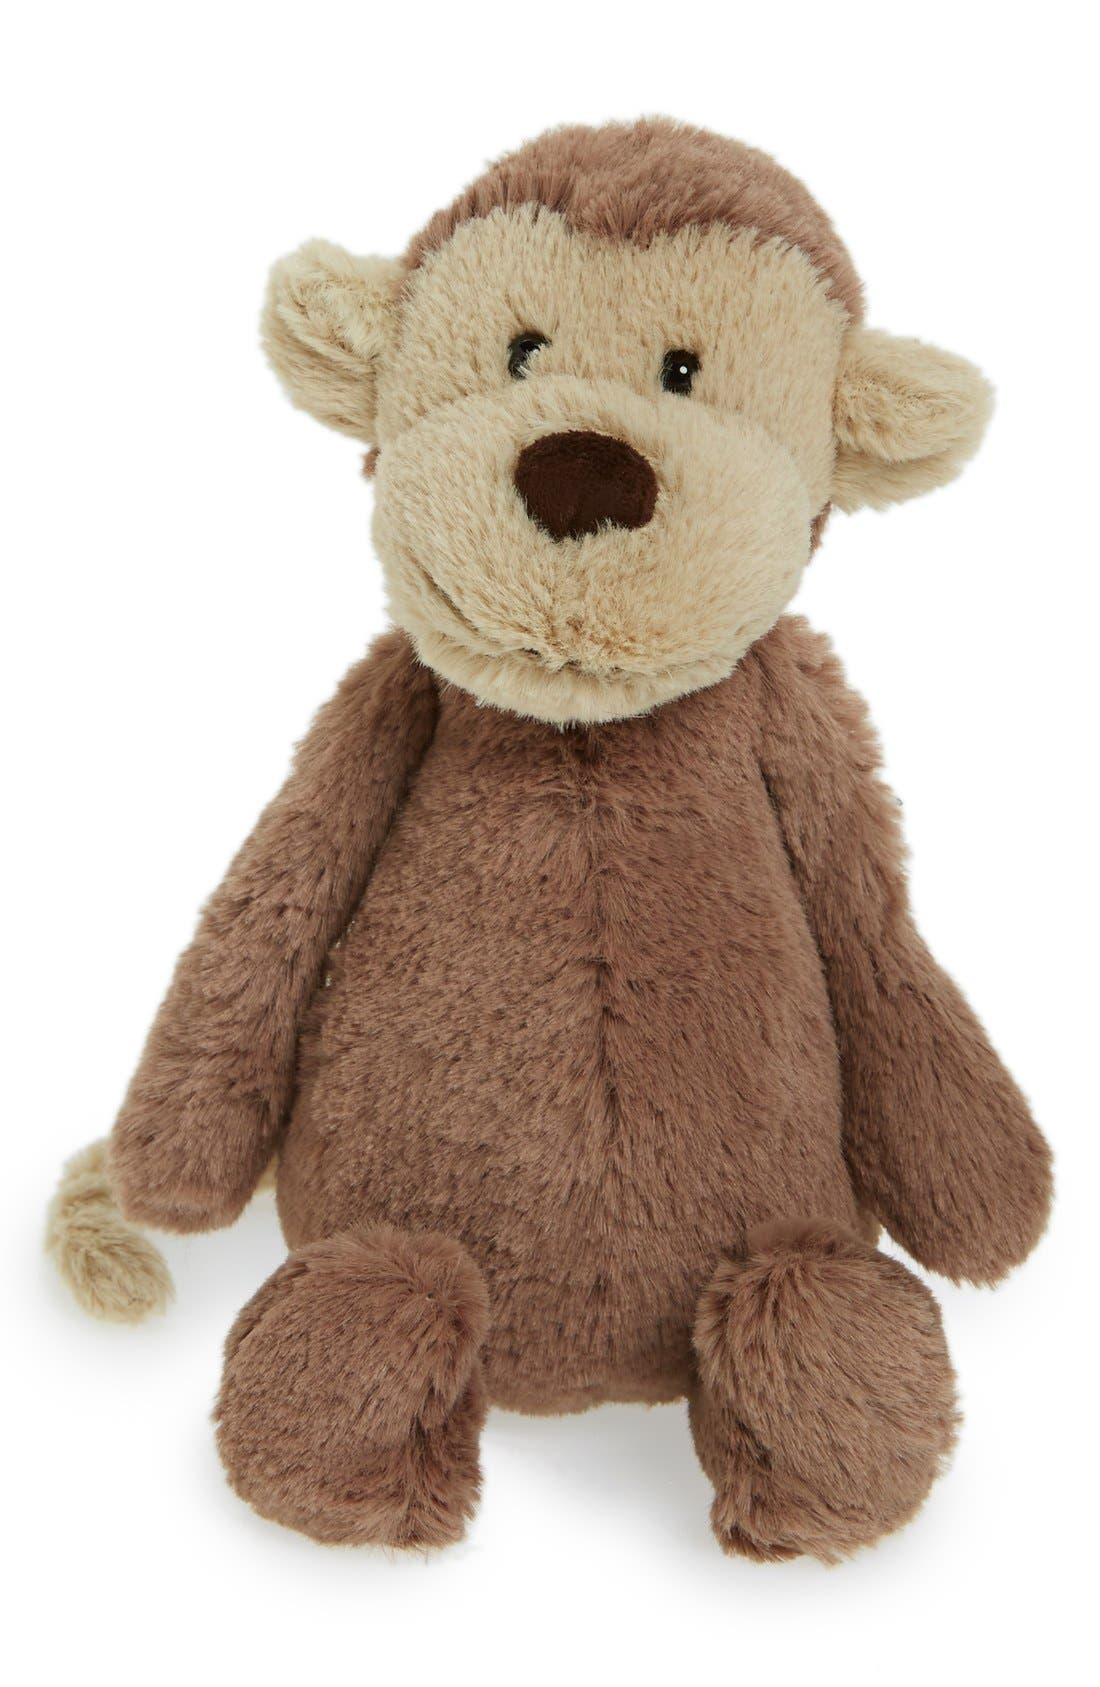 JELLYCAT 'Small Bashful Monkey' Stuffed Animal